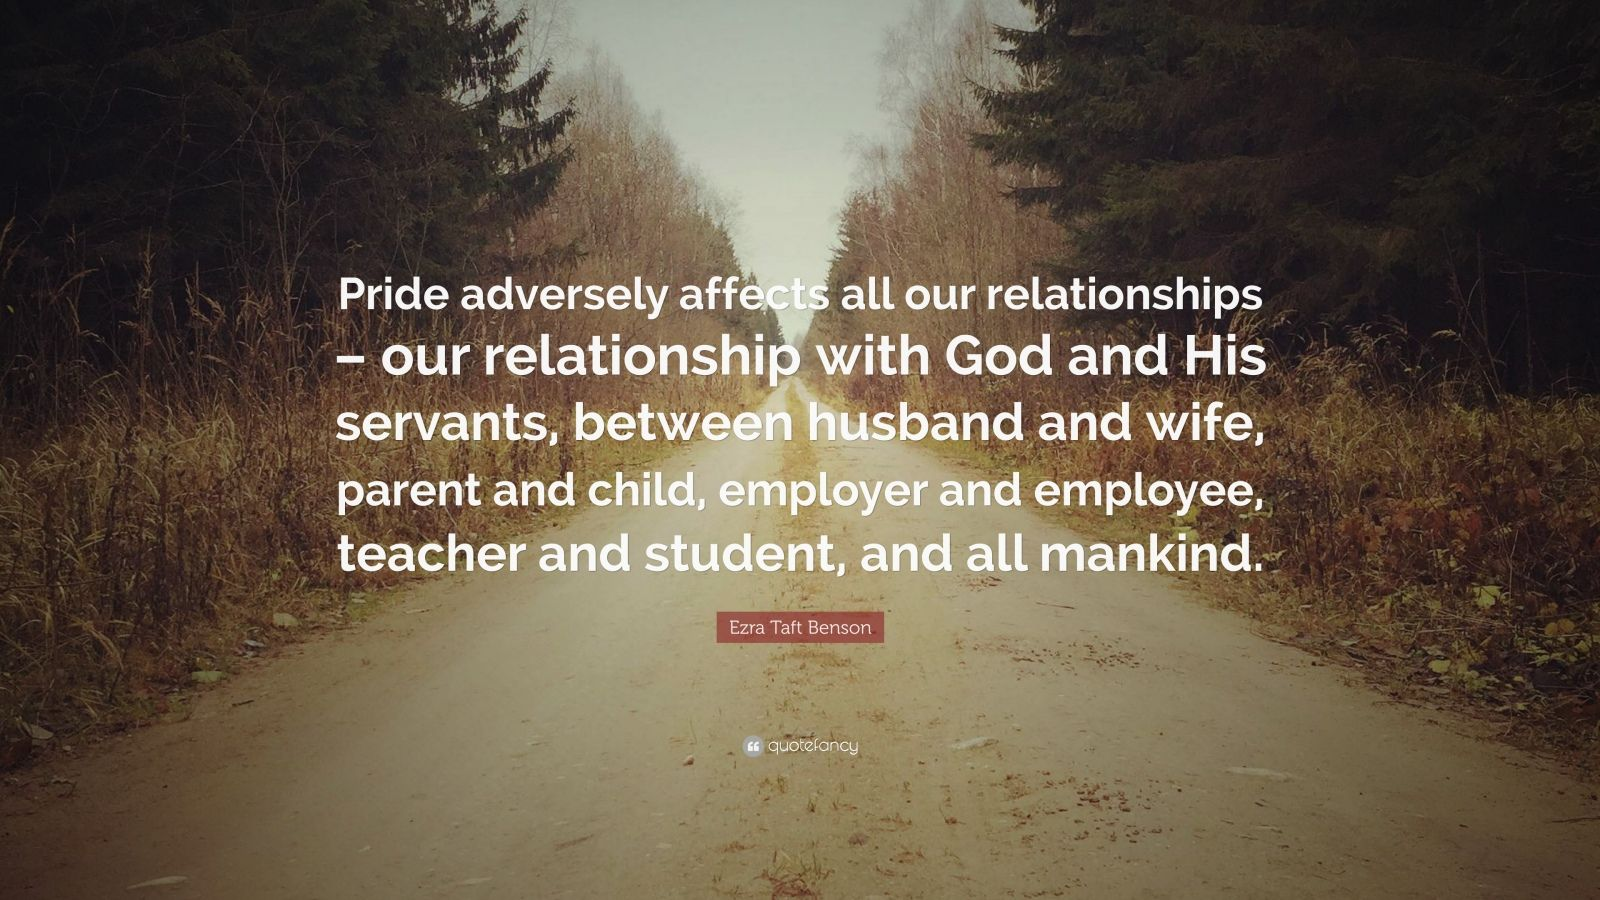 """Ezra Taft Benson Quote: """"Pride adversely affects all our relationships – our relationship with God and His servants, between husband and wife, parent and child, employer and employee, teacher and student, and all mankind."""""""